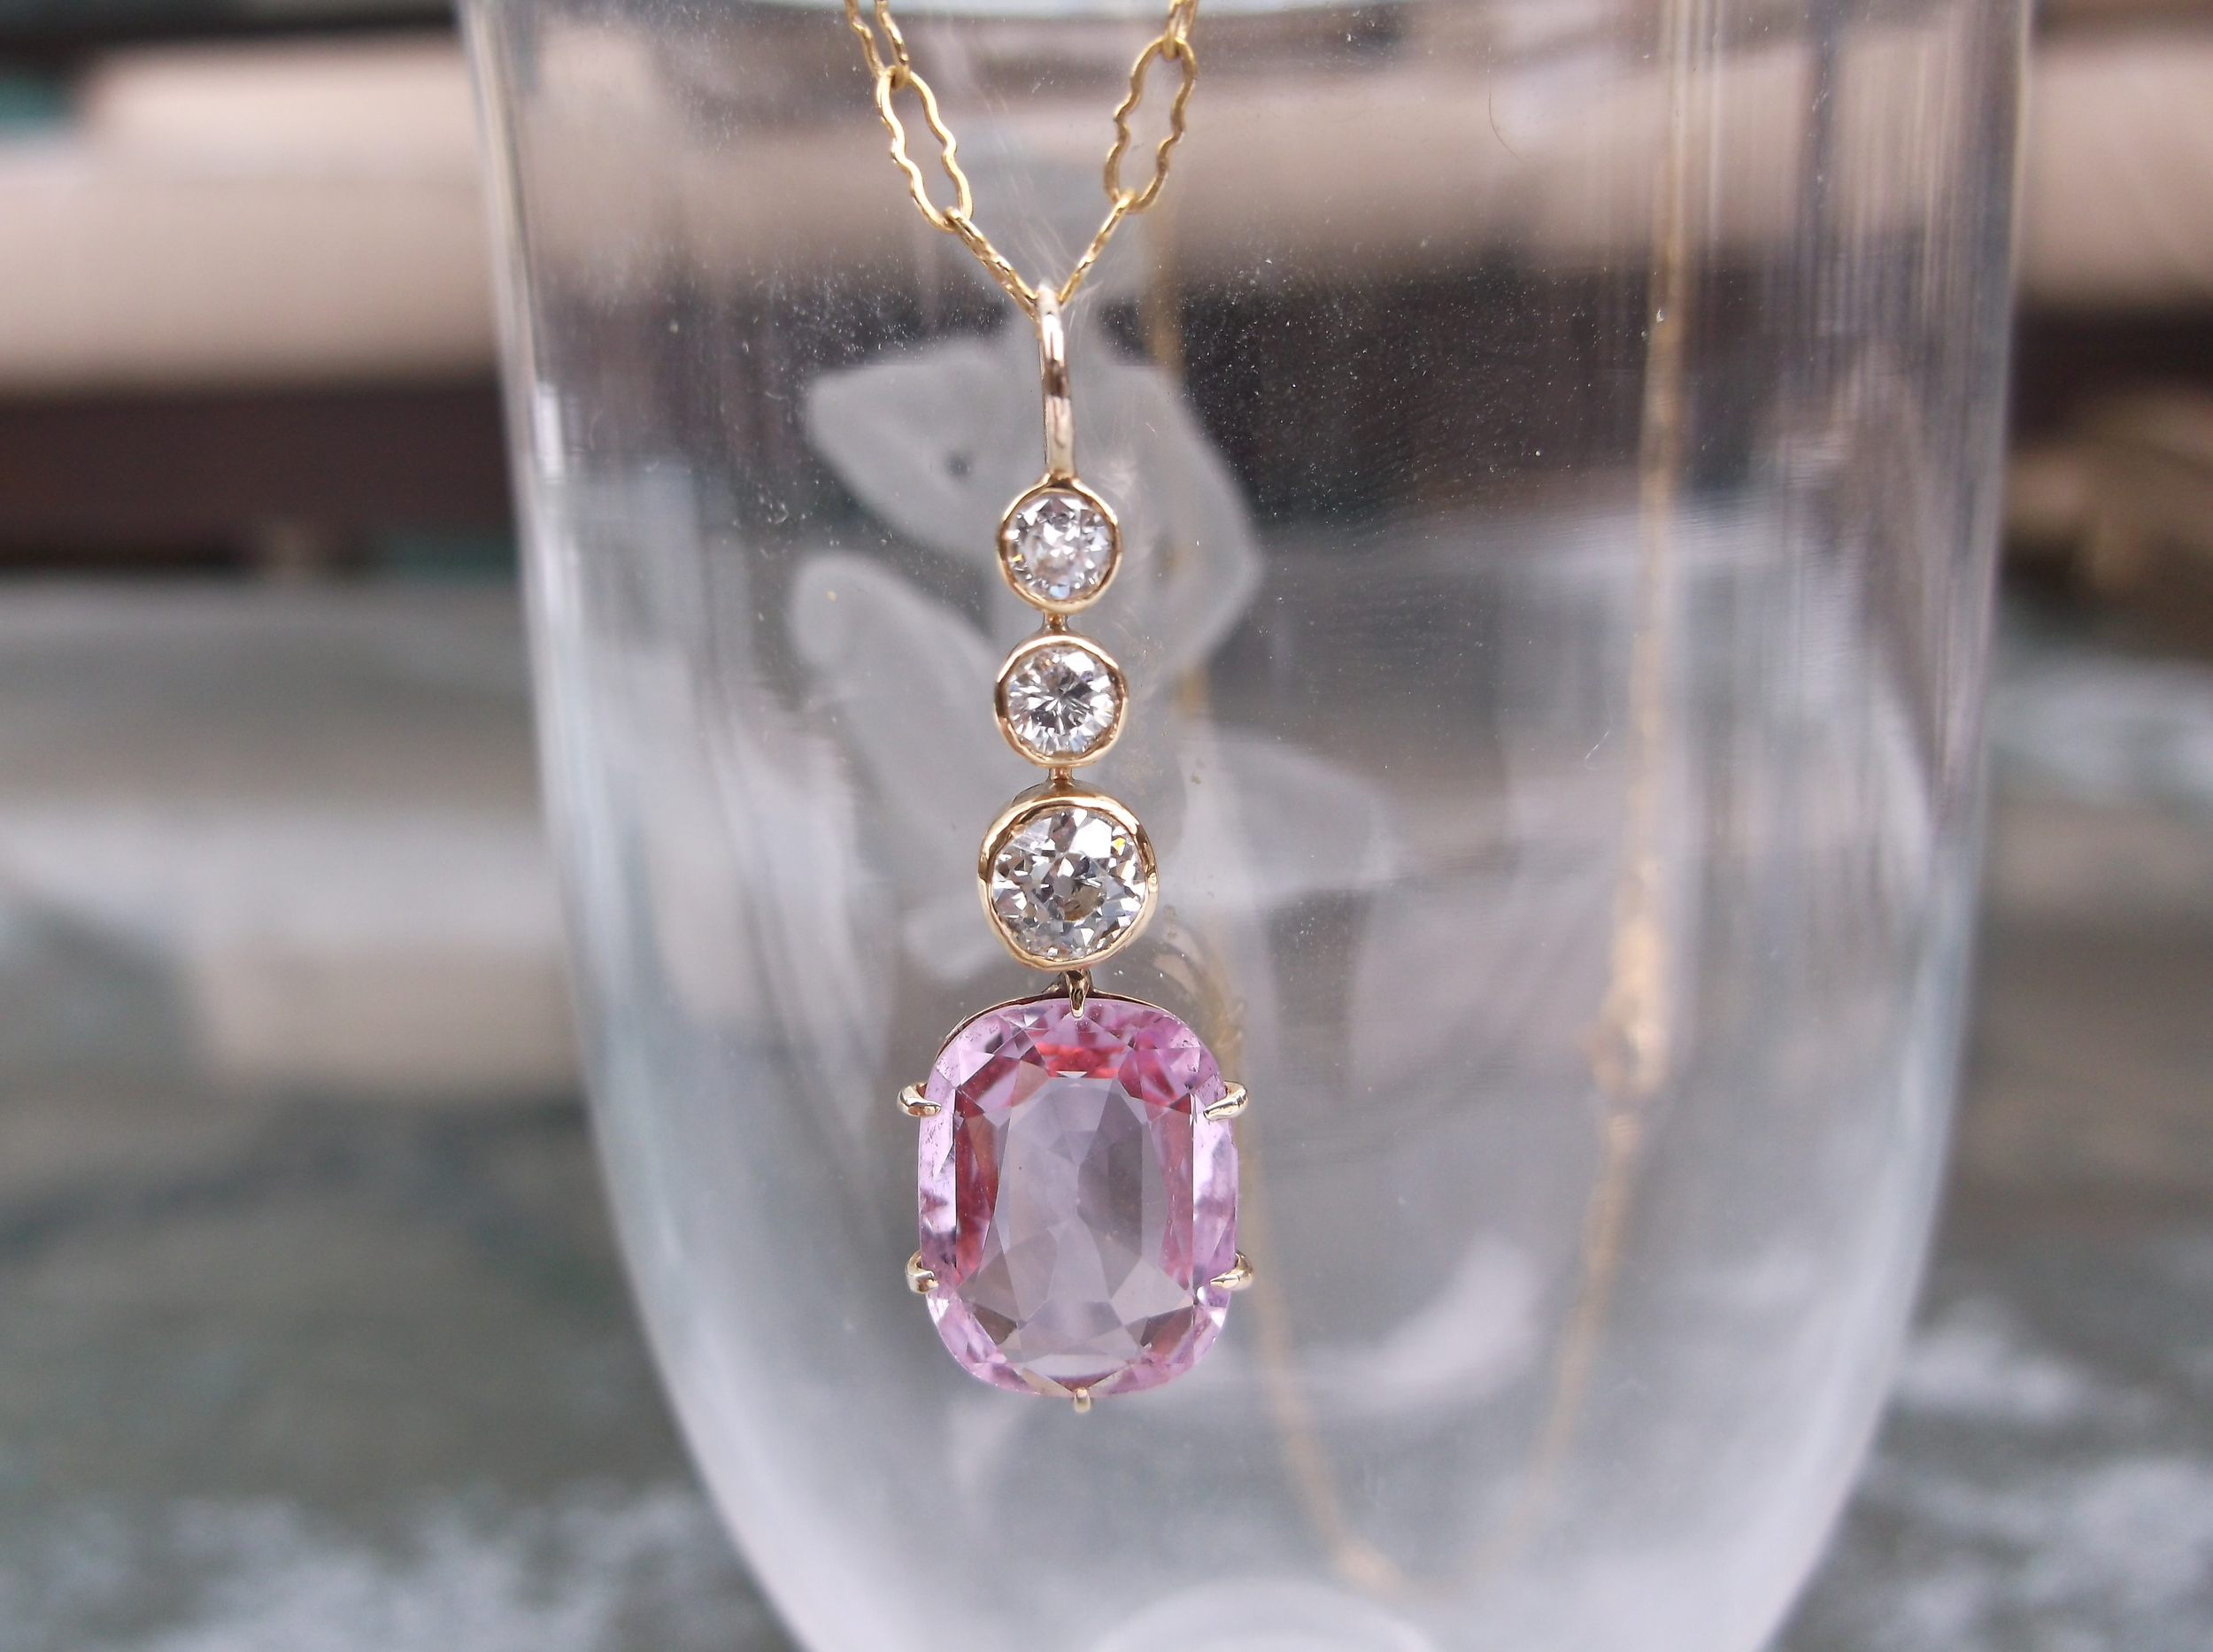 SOLD - Exquisite Edwardian Era (1910-1914) pink topaz and diamond pendant set in yellow gold.